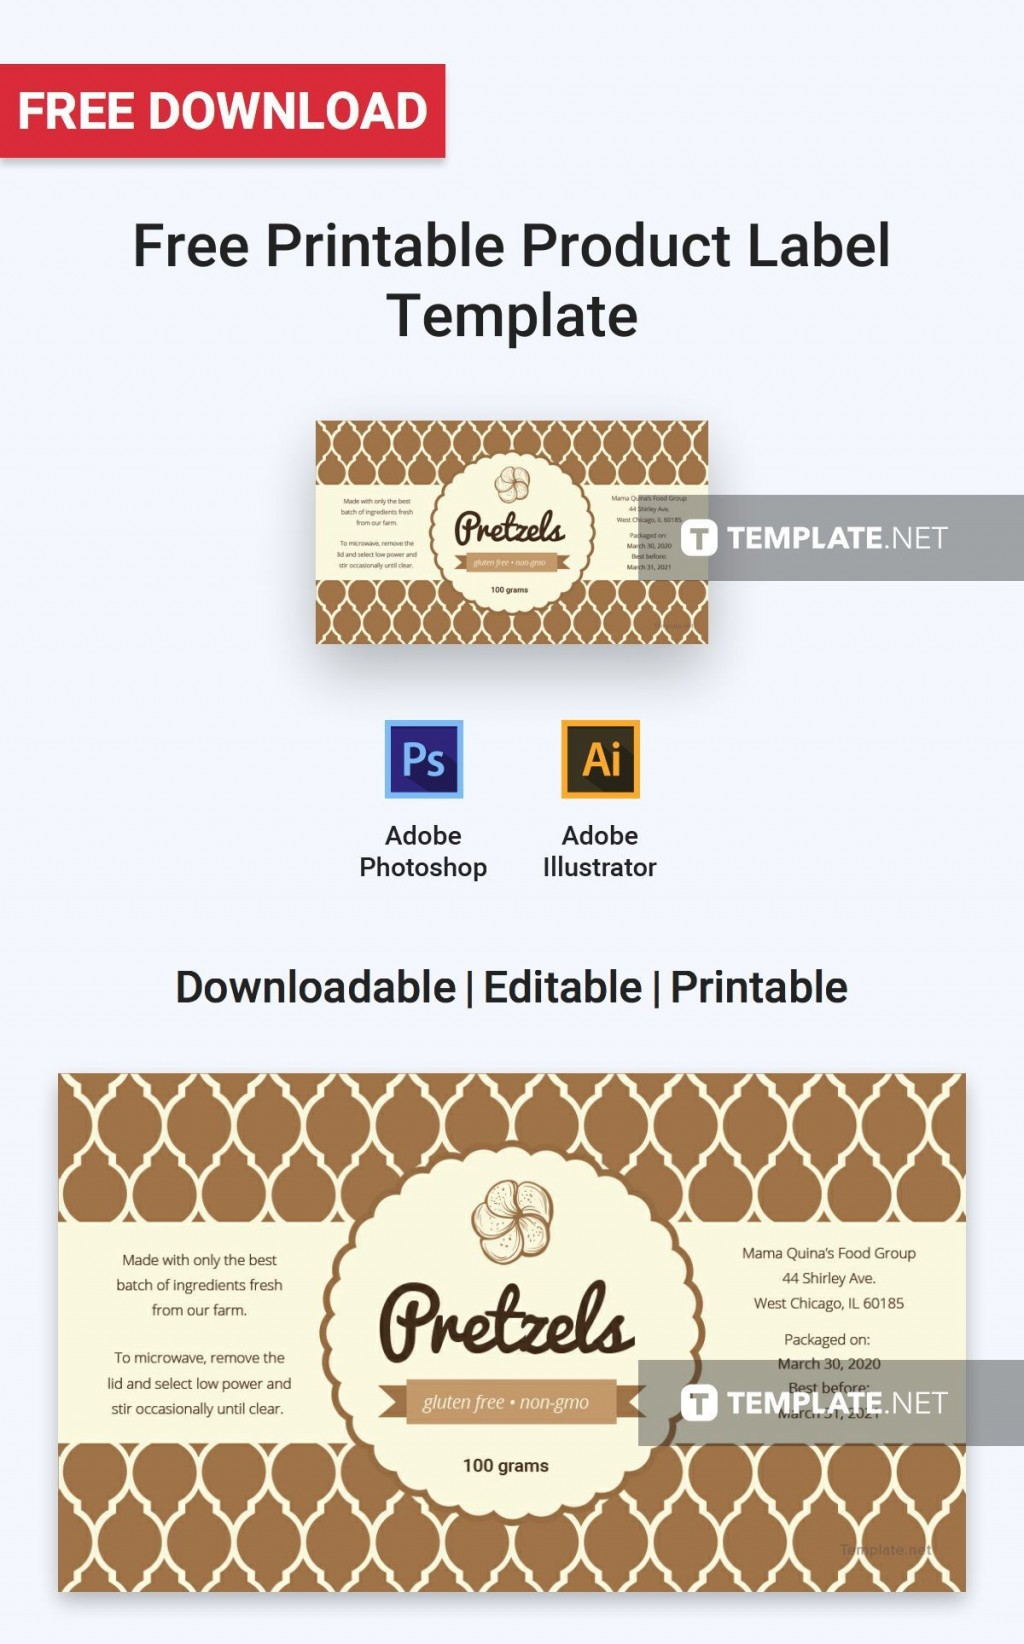 003 Marvelou Free Addres Label Design Template Highest Clarity  Templates For Word ShippingLarge